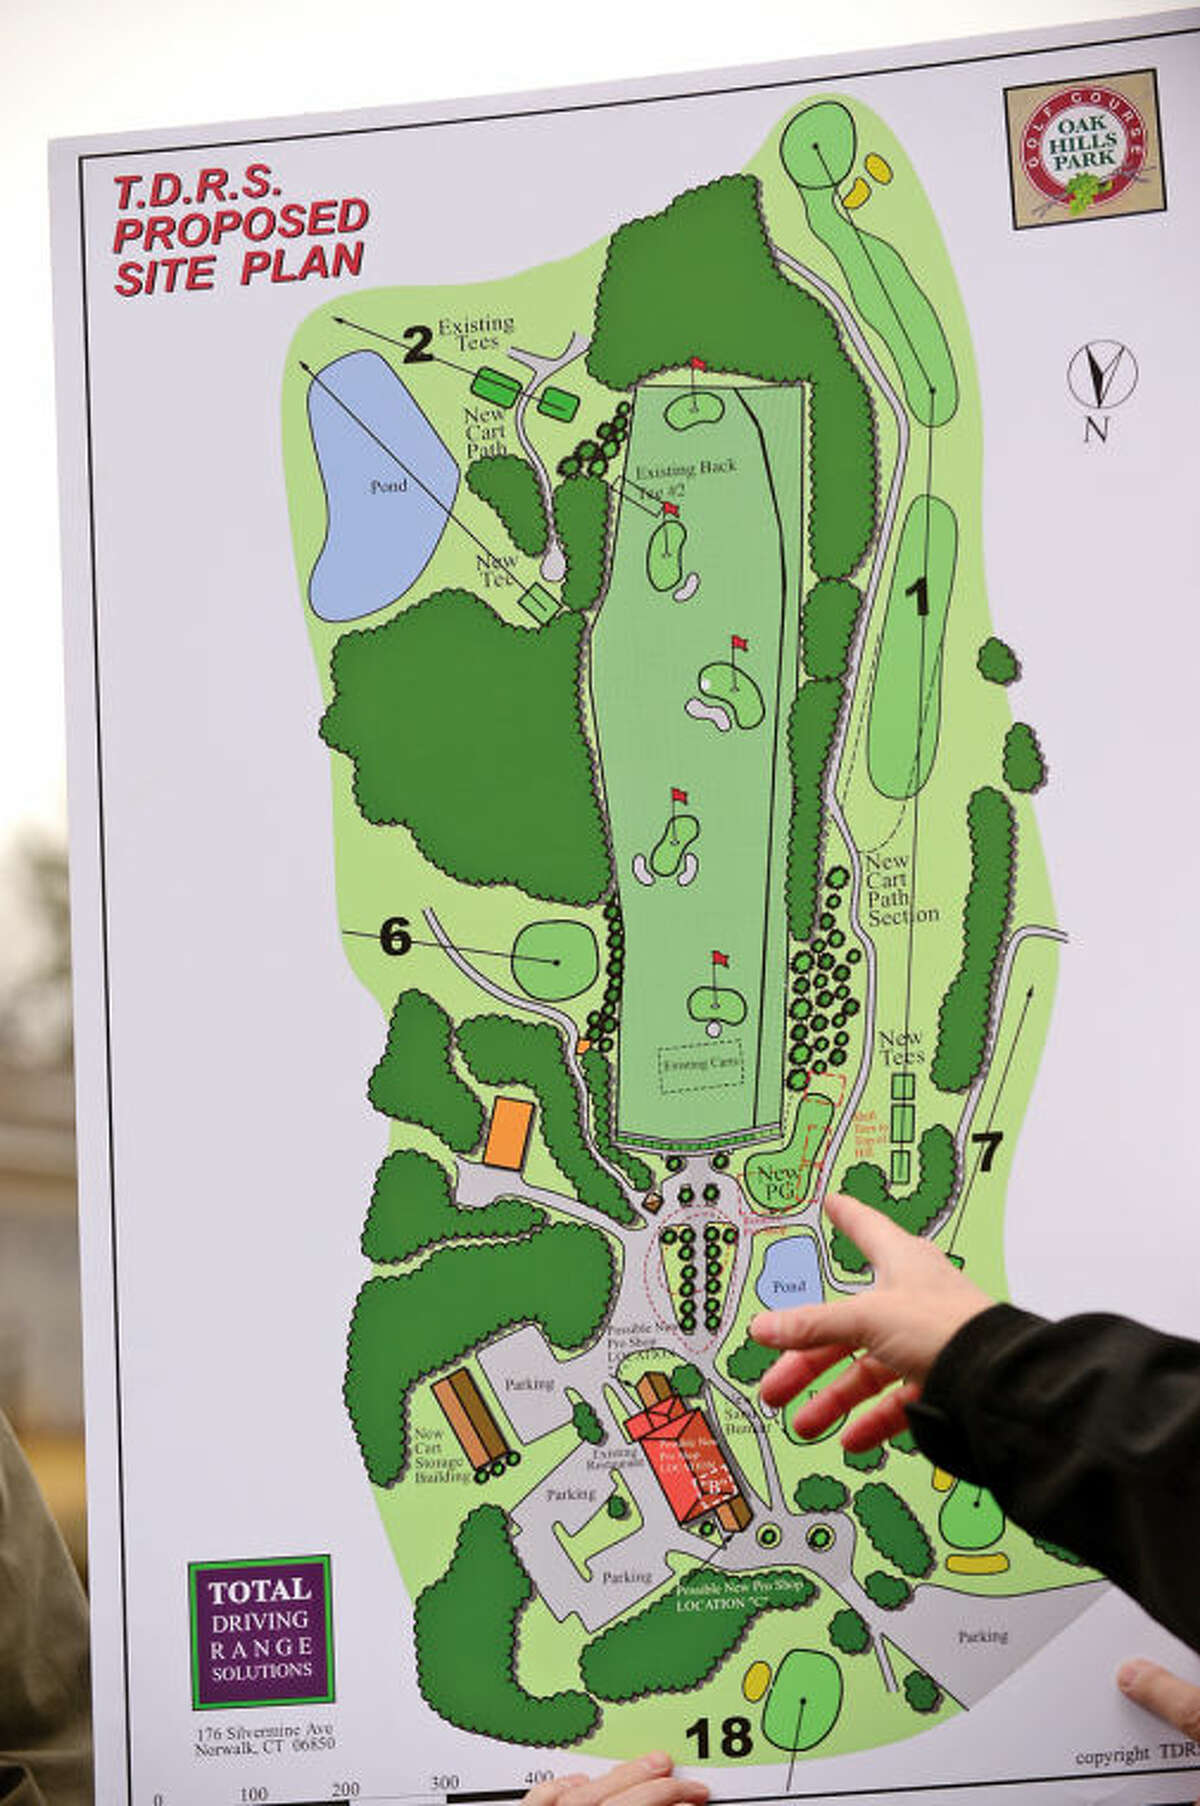 Hour photo / Erik Trautmann The Oak Hills Park Authority host an Informational tour of area covered by the Strategic Plan which includes a new driving range Saturday at Oak Hills Park.